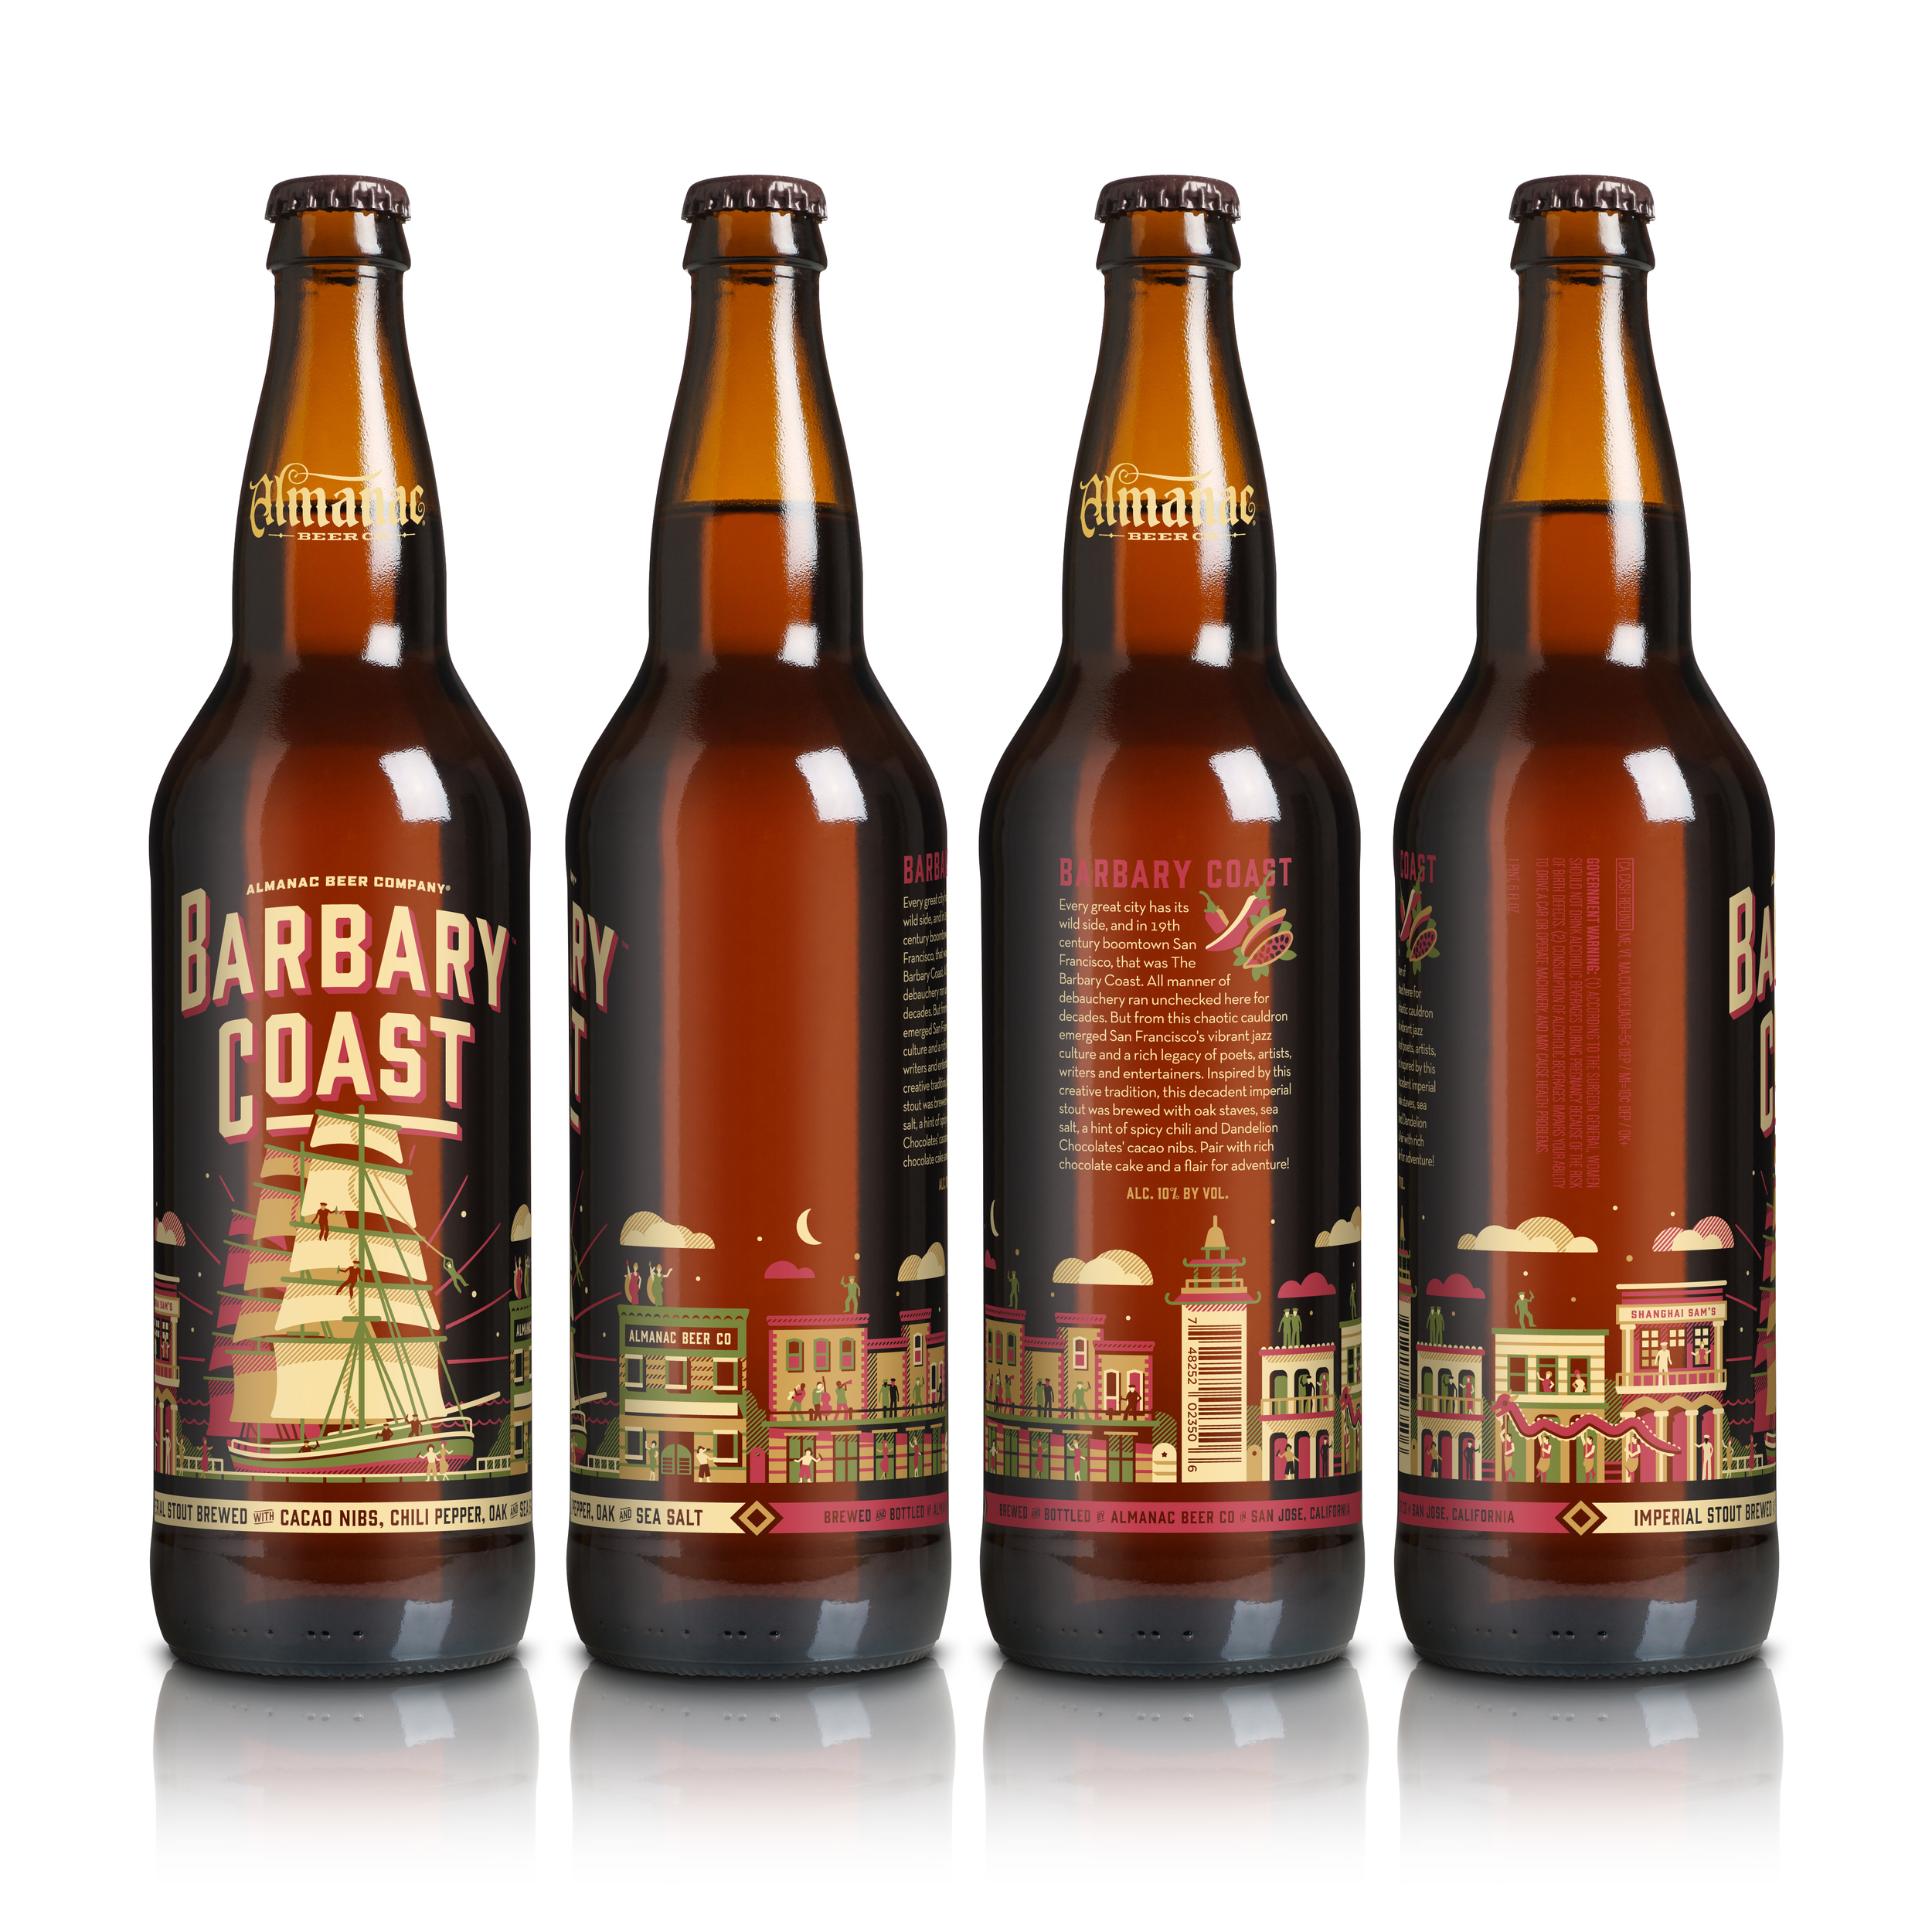 Almanac's Barbary Coast bottle design by DKNG